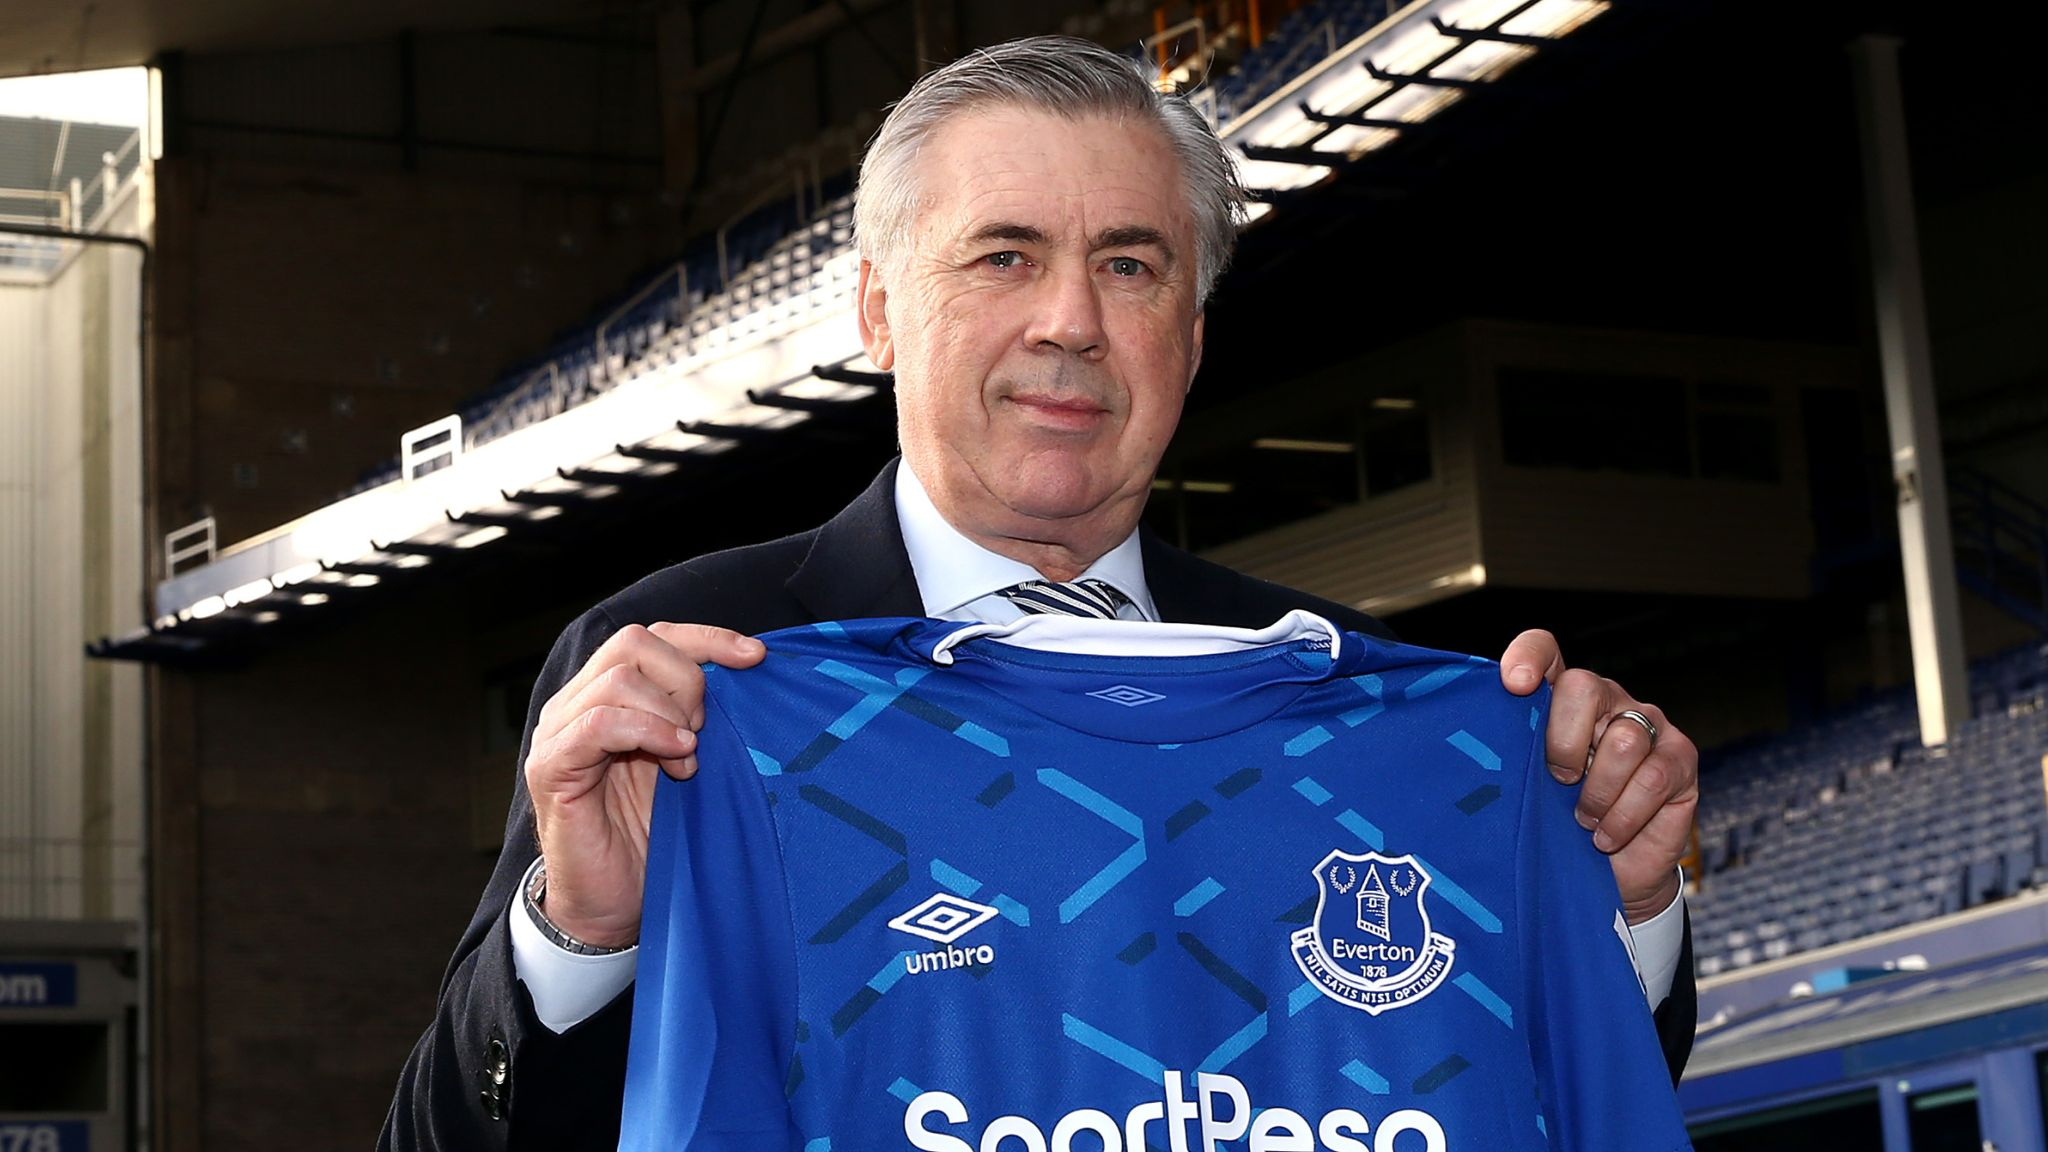 Carlo Ancelotti says 'every day is fantastic' as Everton manager but needs patience